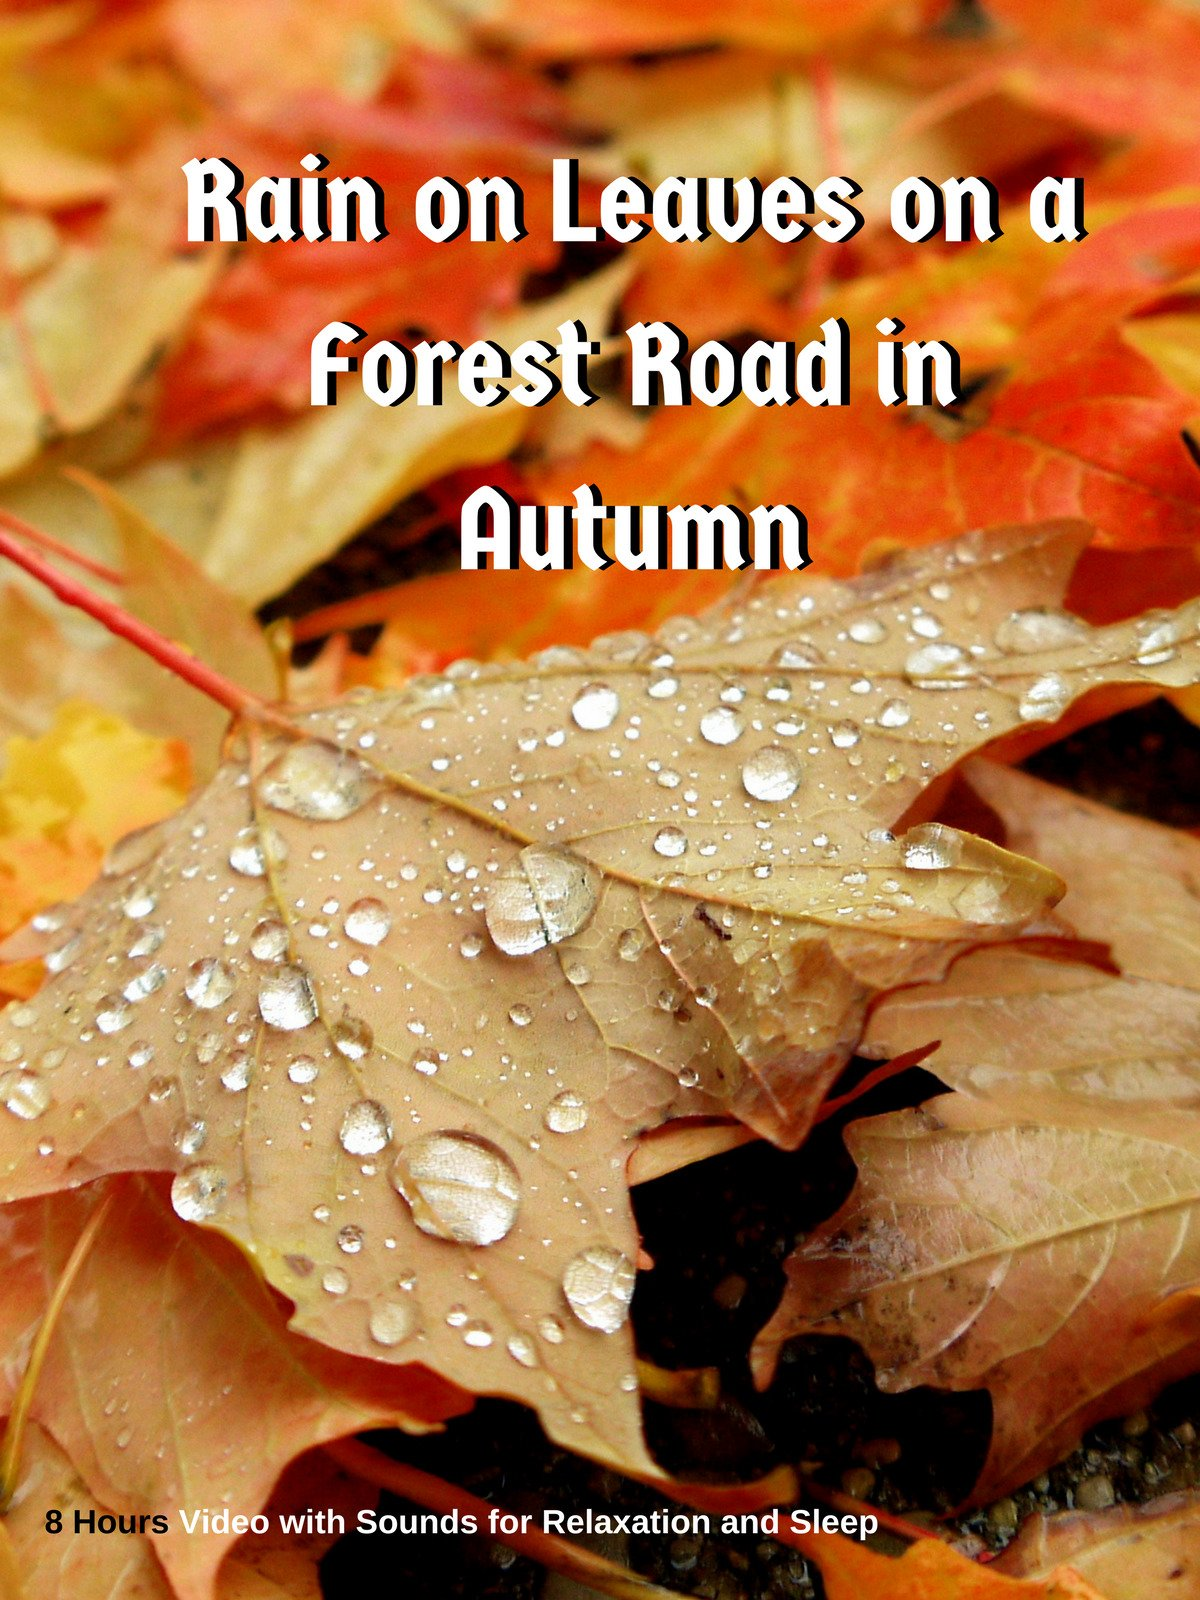 Rain on Leaves on a Forest Road in Autumn